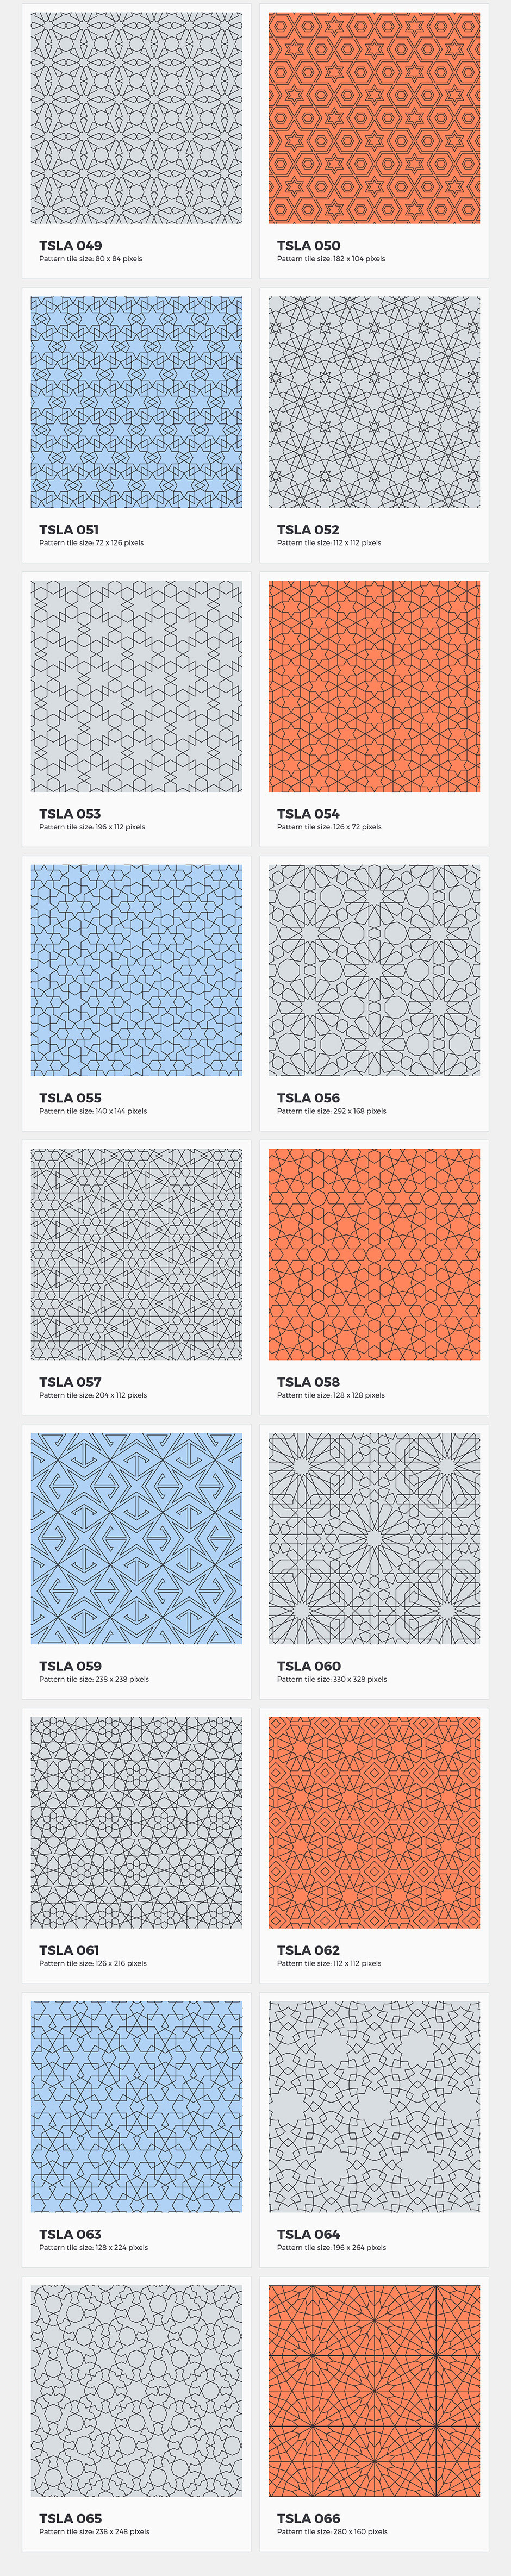 Tesselation Geometry Patterns